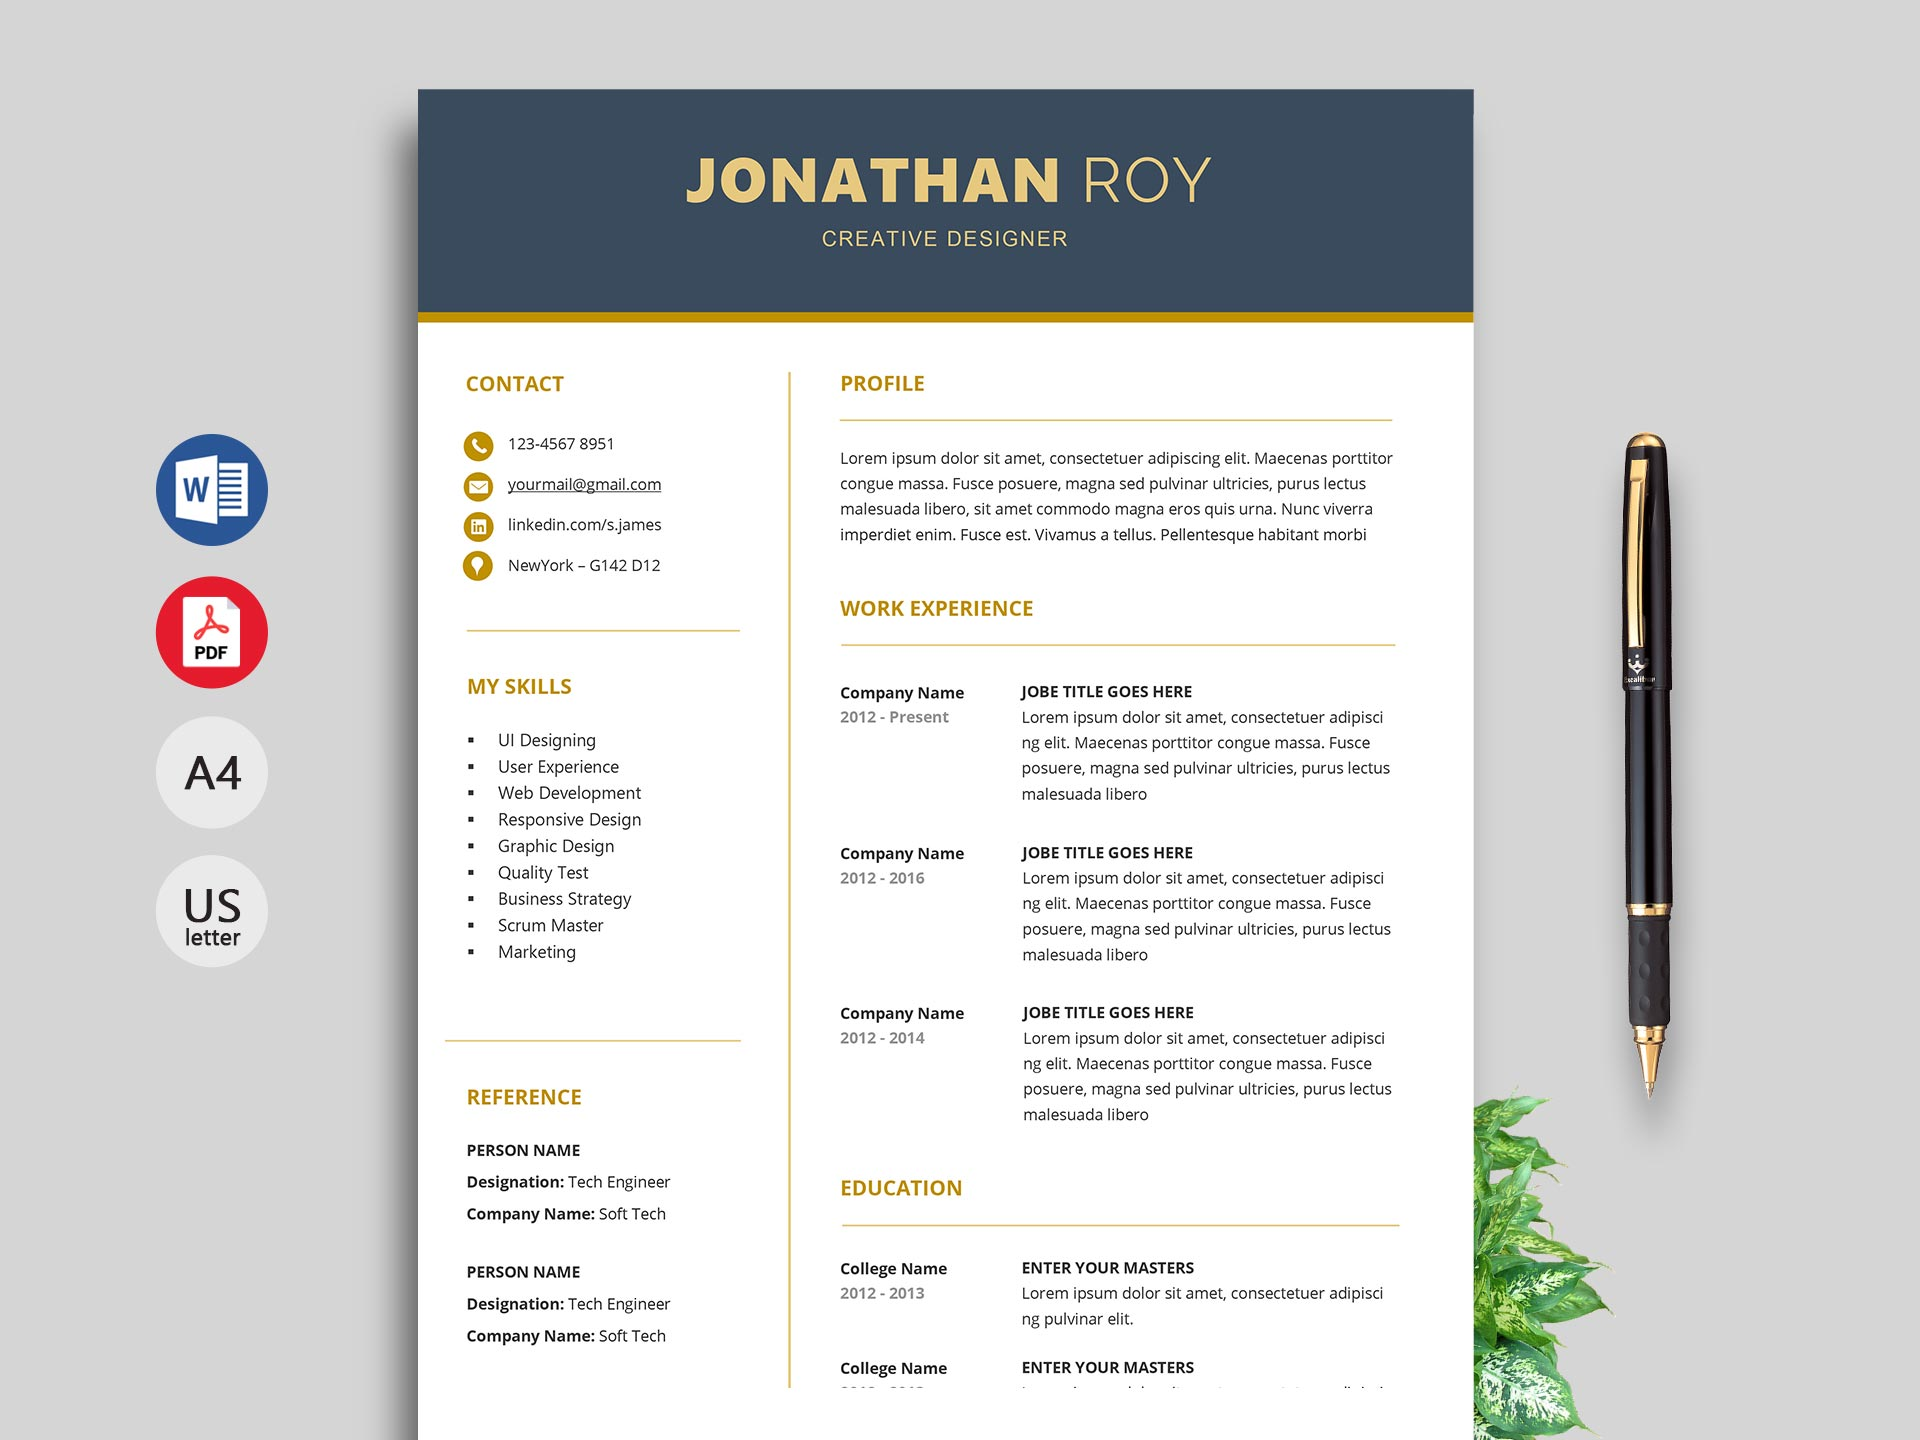 creative resume cv template free resumekraft nice templates word gain ansible experience Resume Nice Resume Templates Word